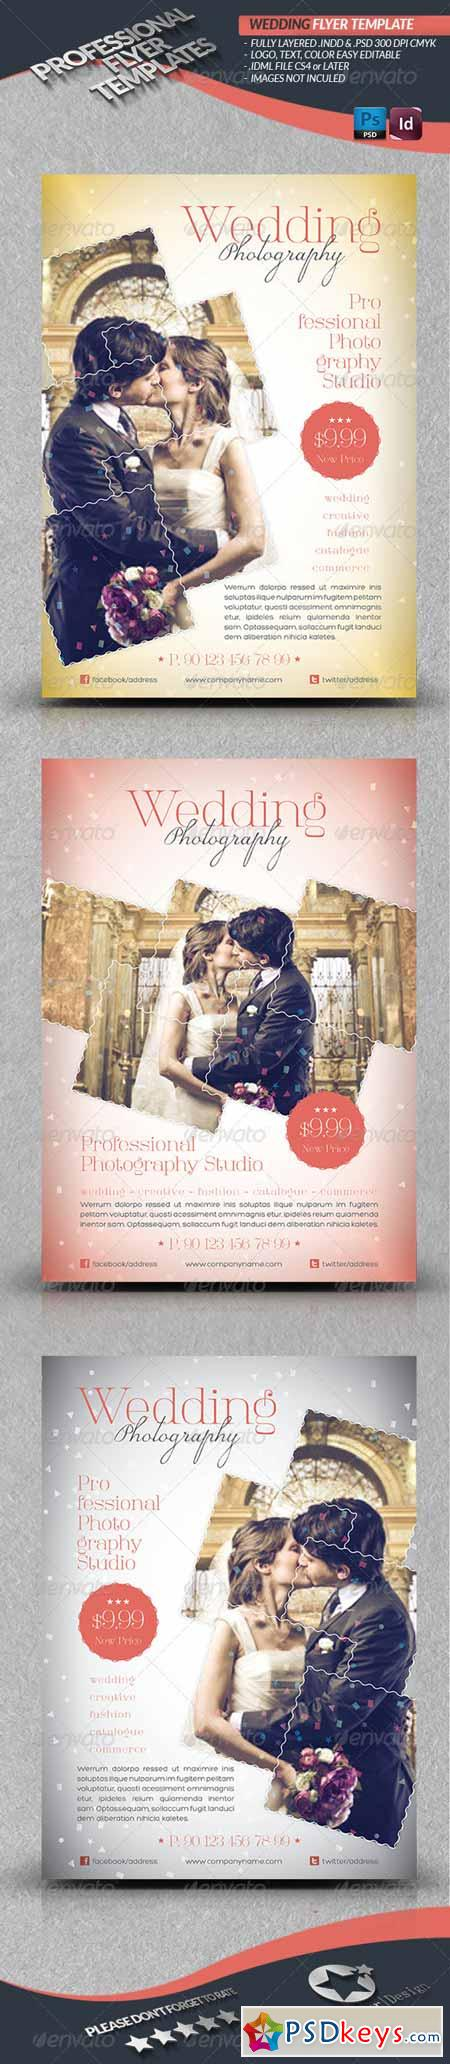 Wedding Photography Flyer Template 4291621